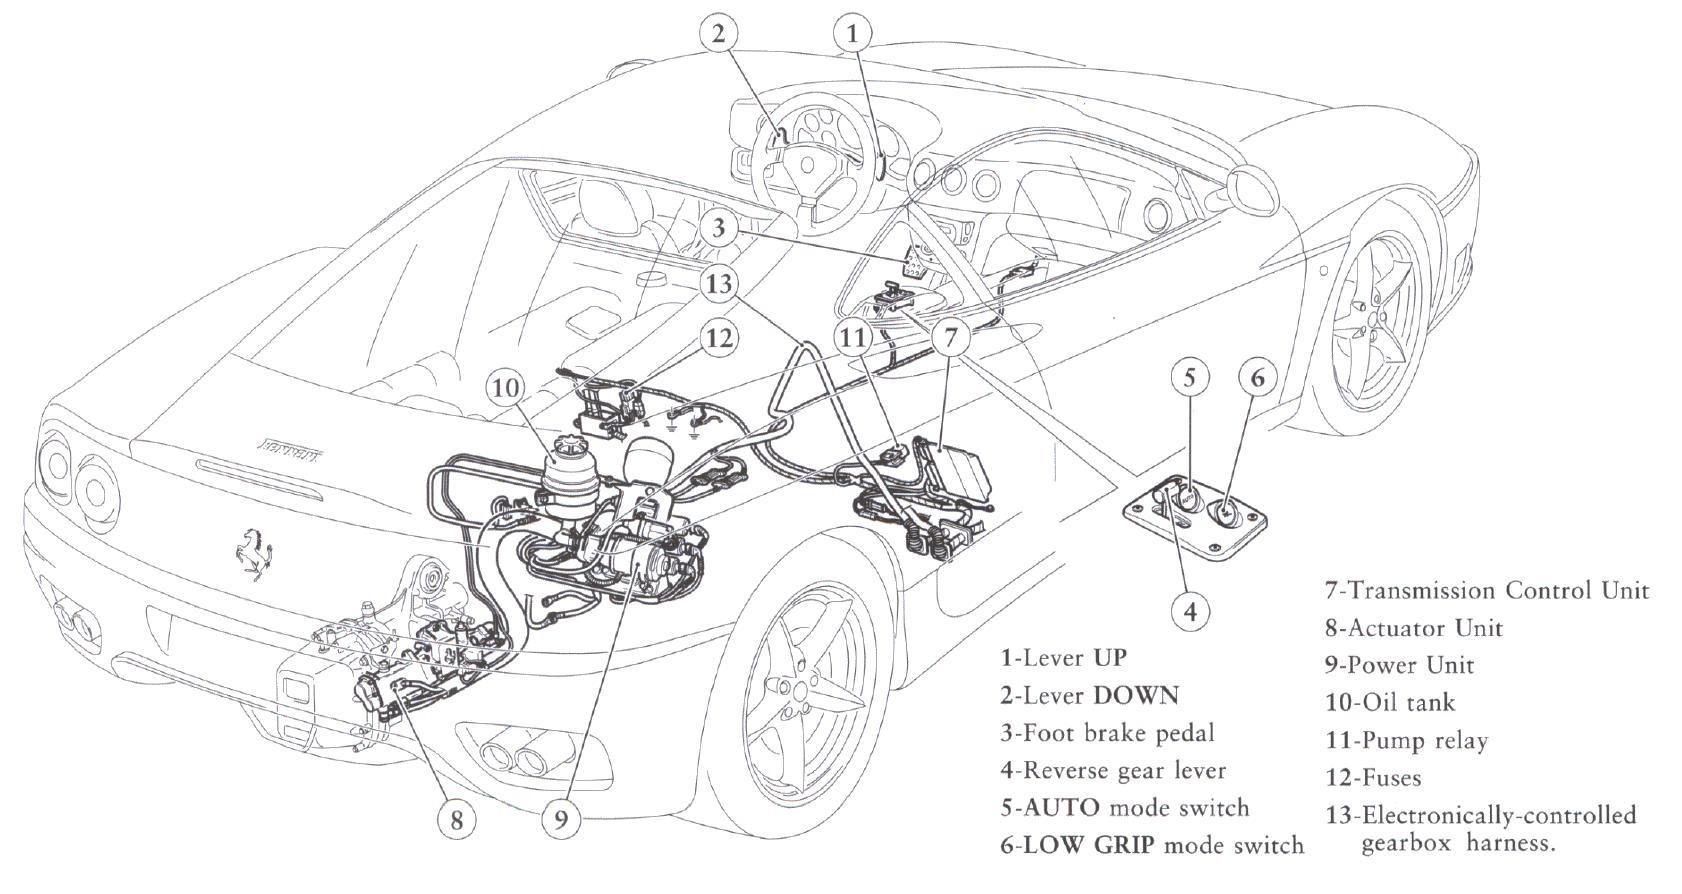 Concept Cars Latest moreover Bmw 750li Abs Wiring Diagram as well 1986 Jeep Cj7 6 Cylinder Engine as well Honda Nsr125f125r Motocycle Service Repair Workshop Manual furthermore RepairGuideContent. on honda car wiring diagram